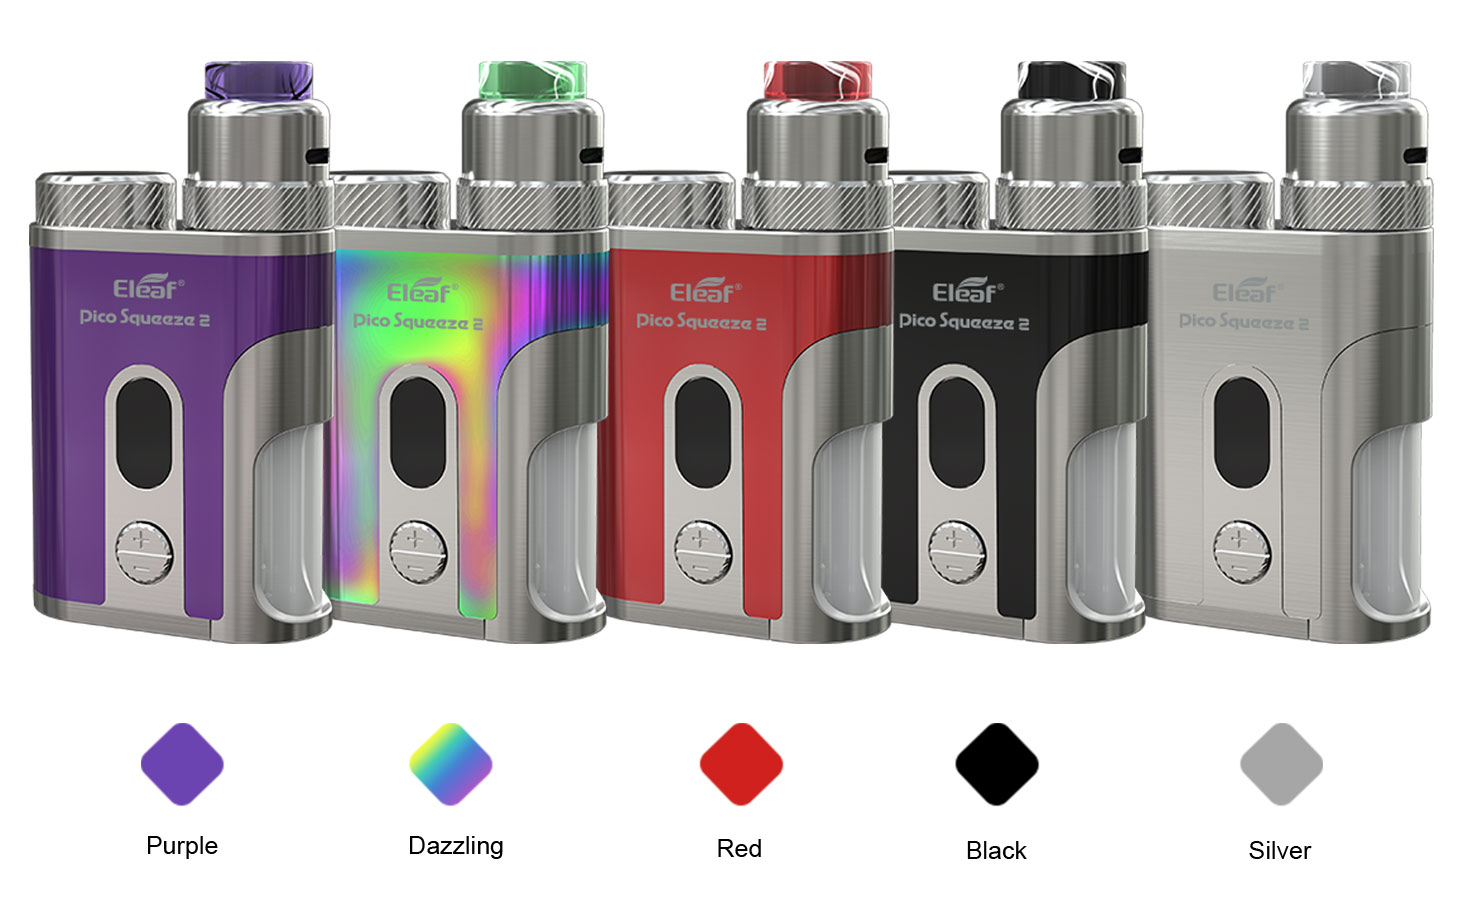 Eleaf Pico Squeeze 2 with Coral 2 Starter Kit